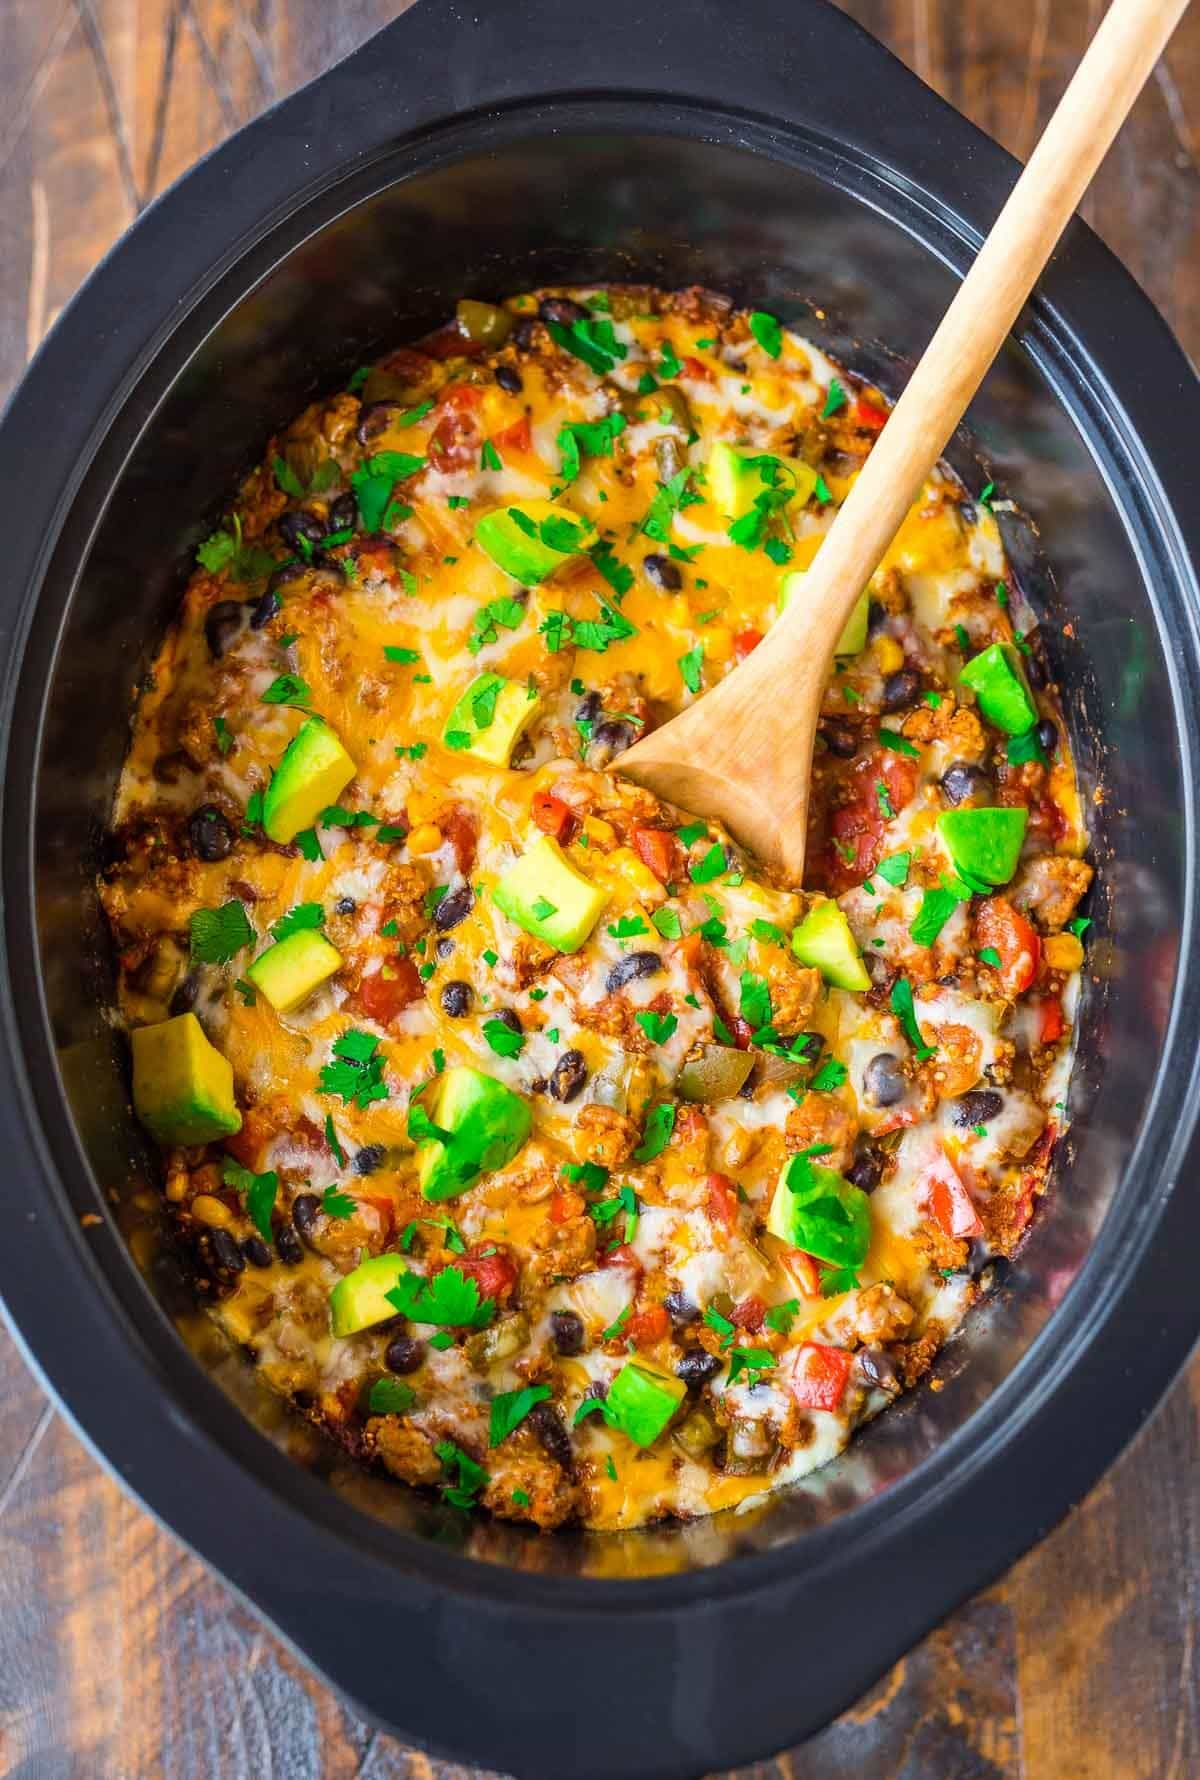 Crock Pot Mexican Casserole Recipe Well Plated By Erin